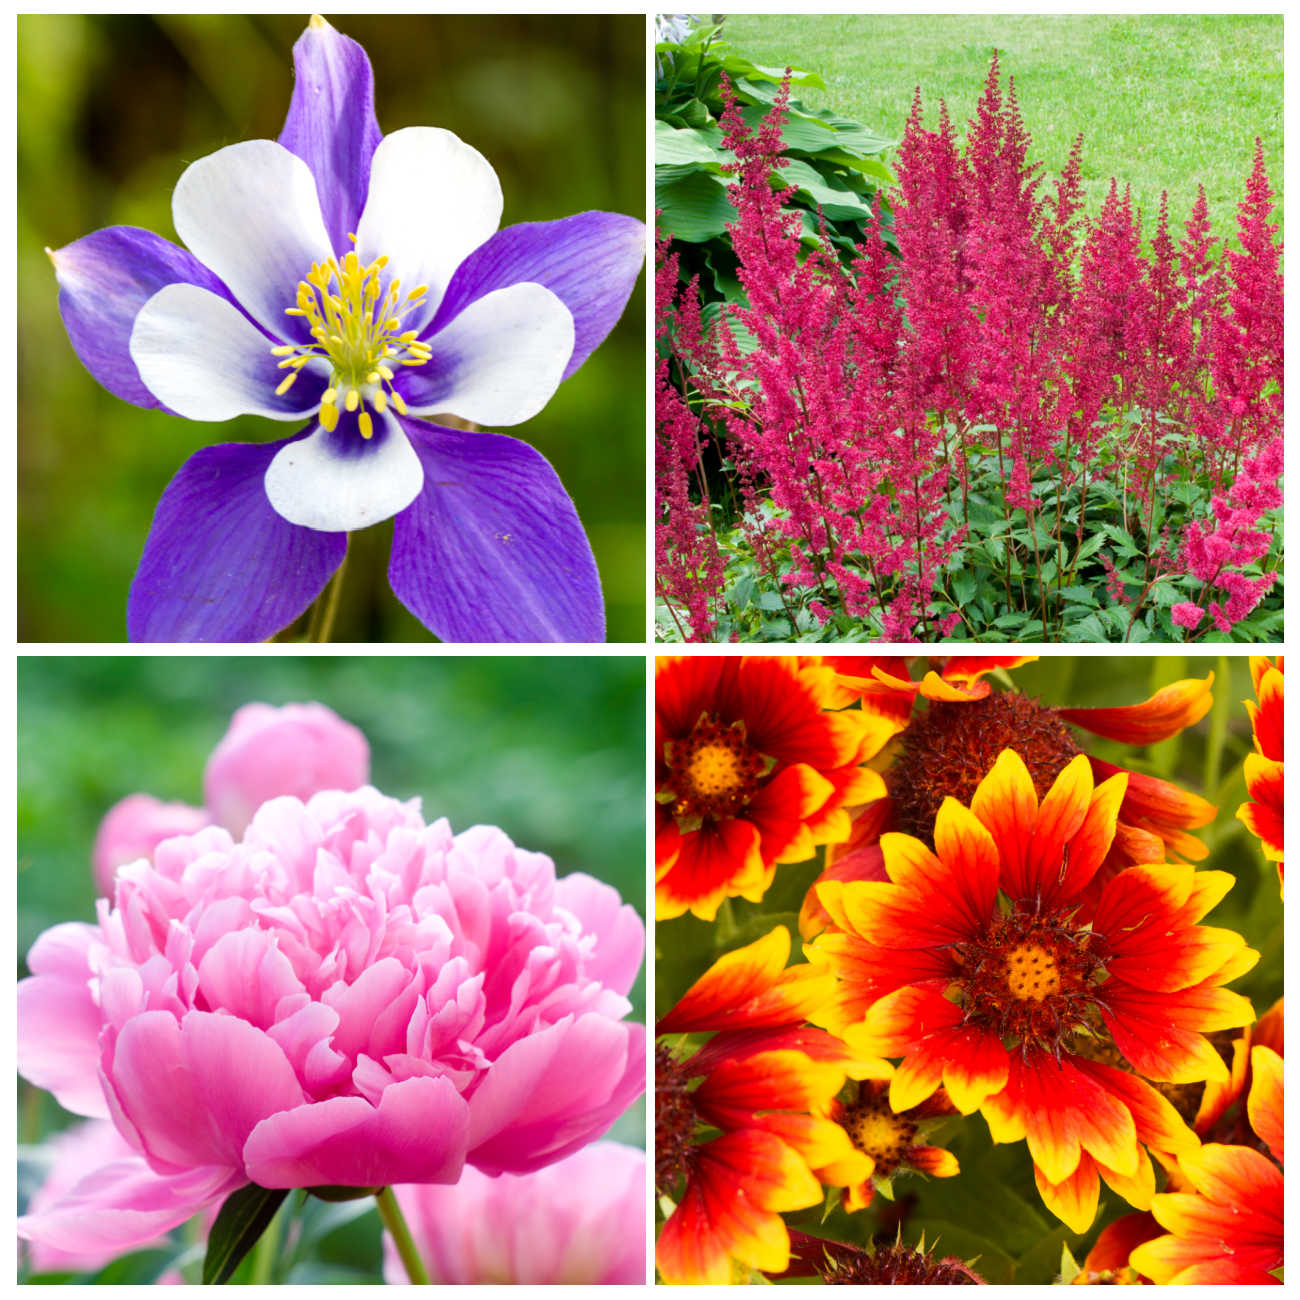 Collage of 4 photos: top left to right and around - purple columbine flower, red astilbe, blanket flower, pink peony flower